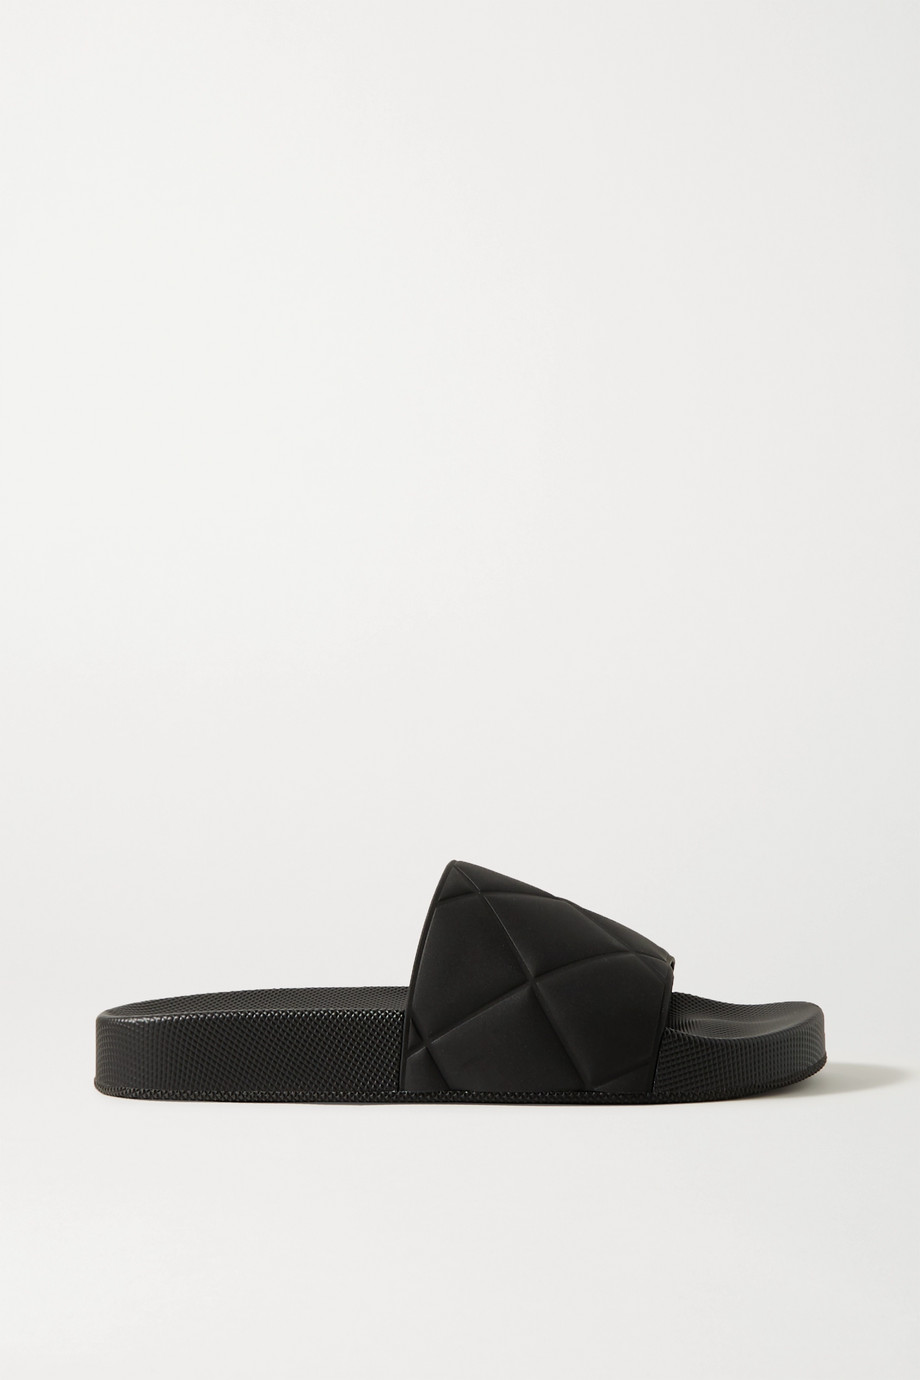 Bottega Veneta Embossed rubber slides